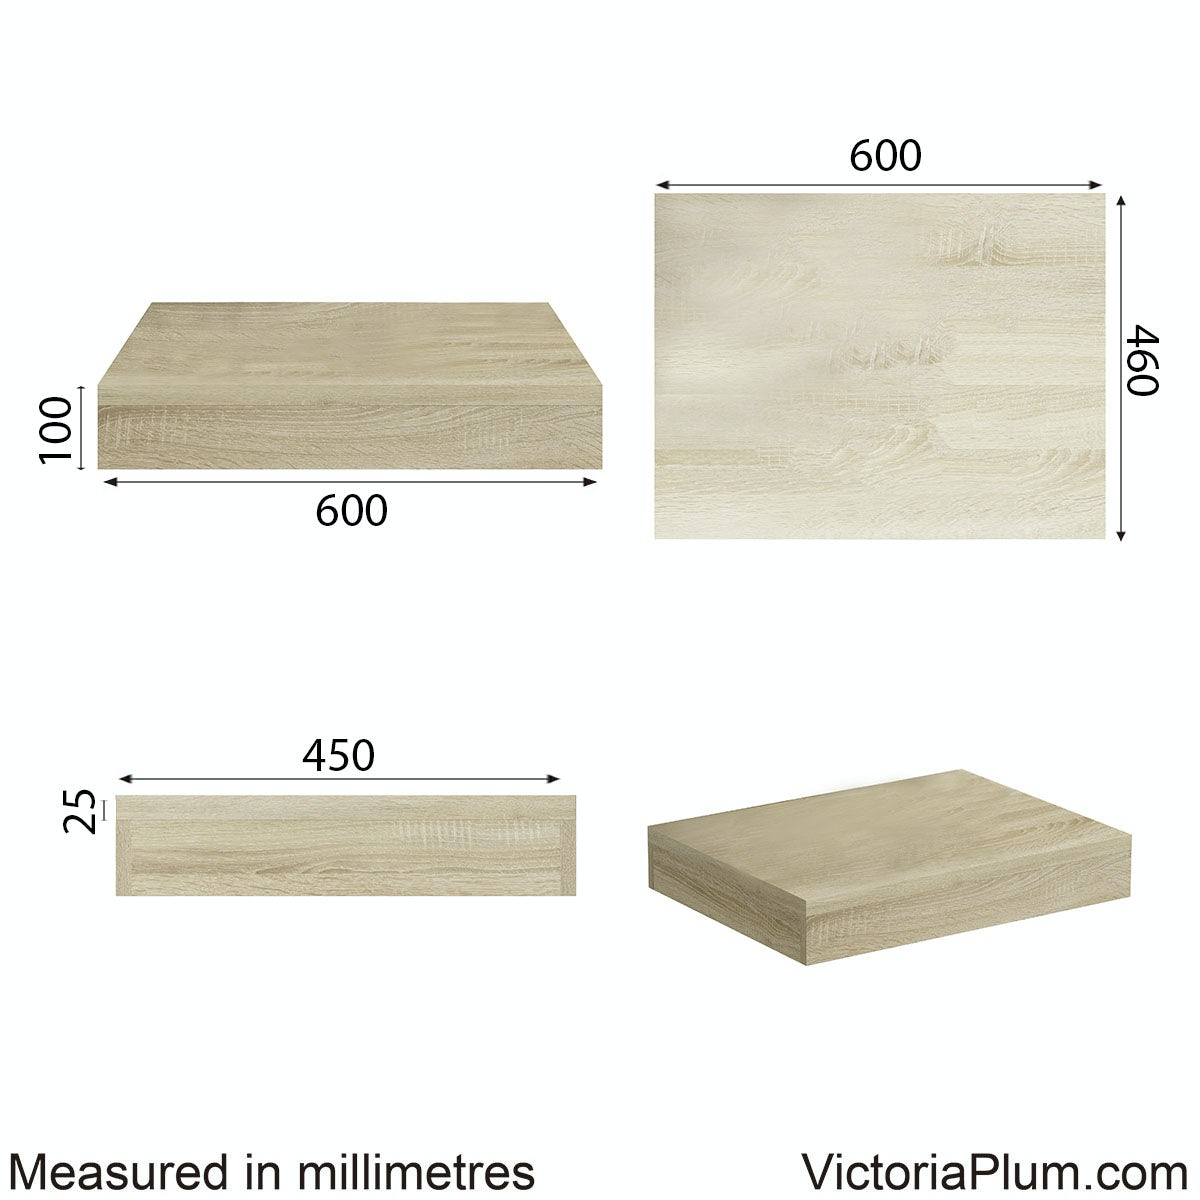 Dimensions for Mode Orion oak wall hung countertop basin shelf